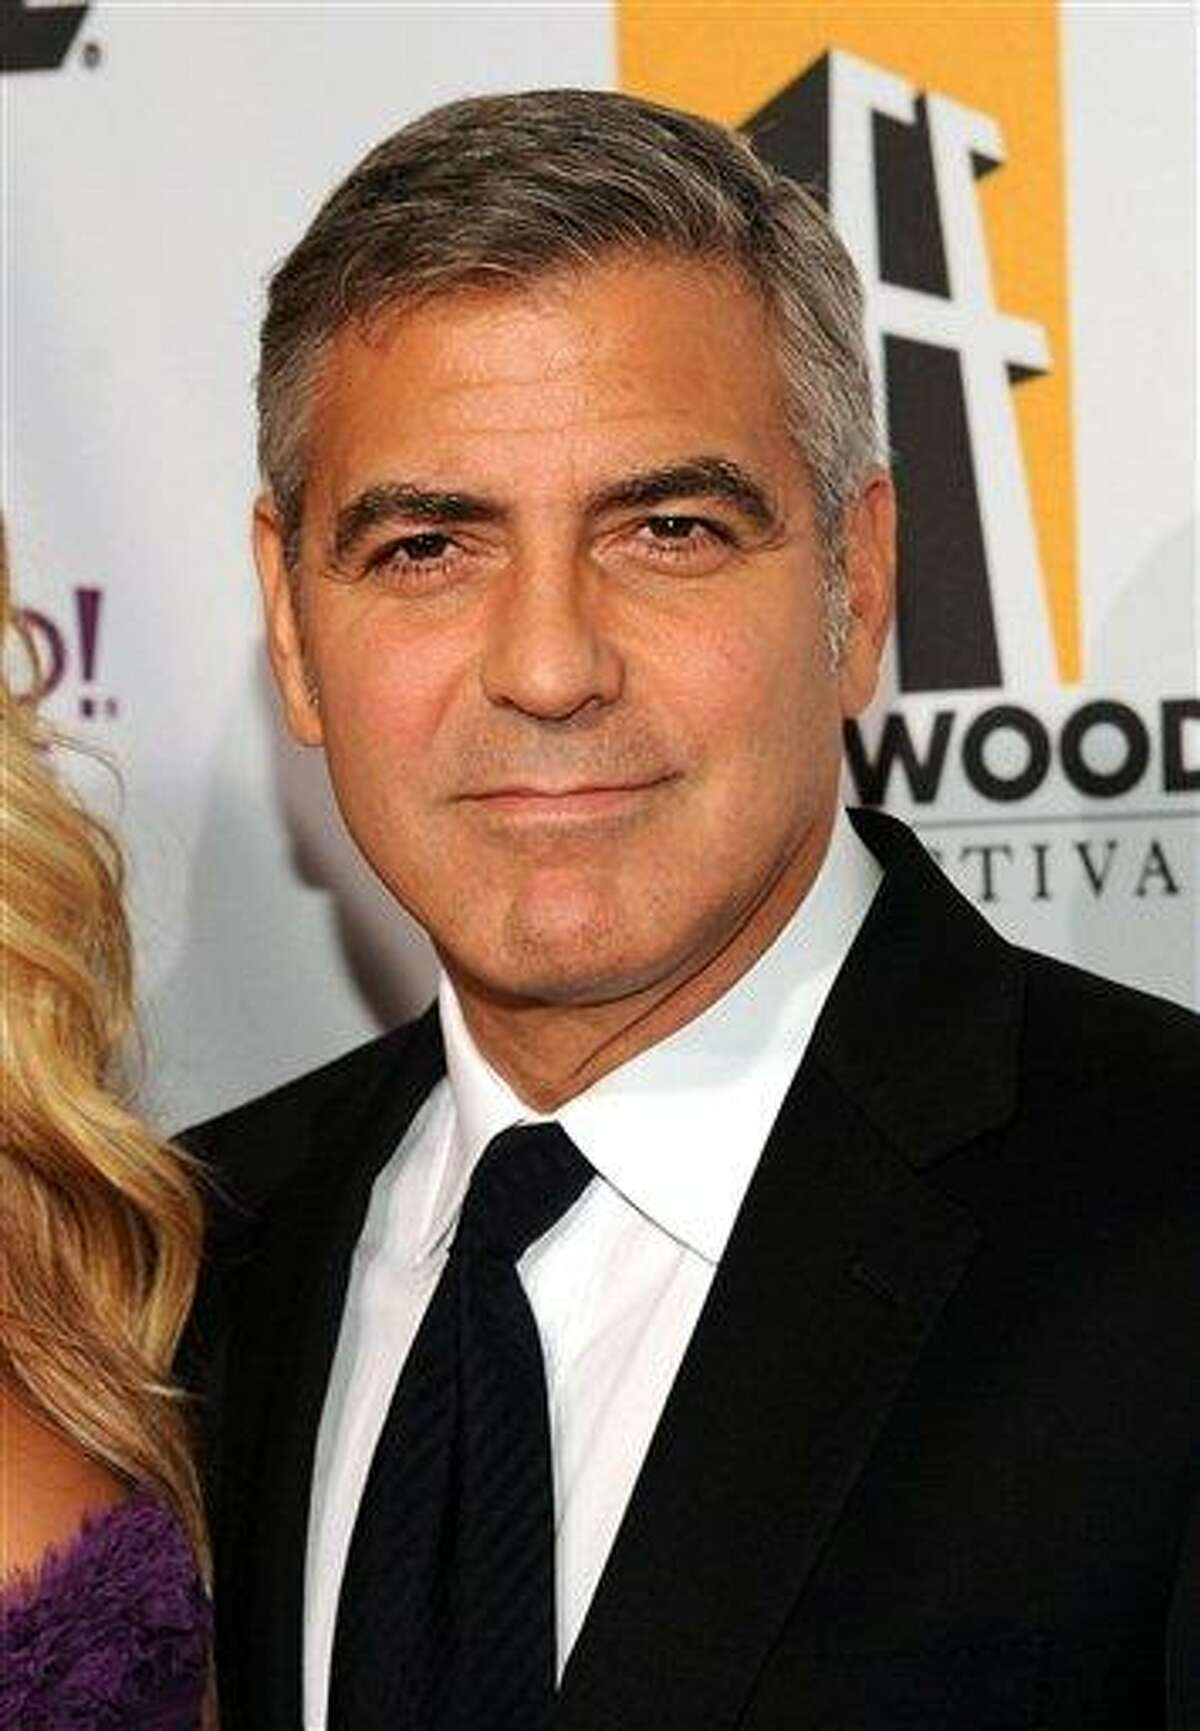 FILE - In this Oct. 24 file photo, actor George Clooney arrives at the 15th Annual Hollywood Film Awards Gala in Beverly Hills, Calif. (AP)